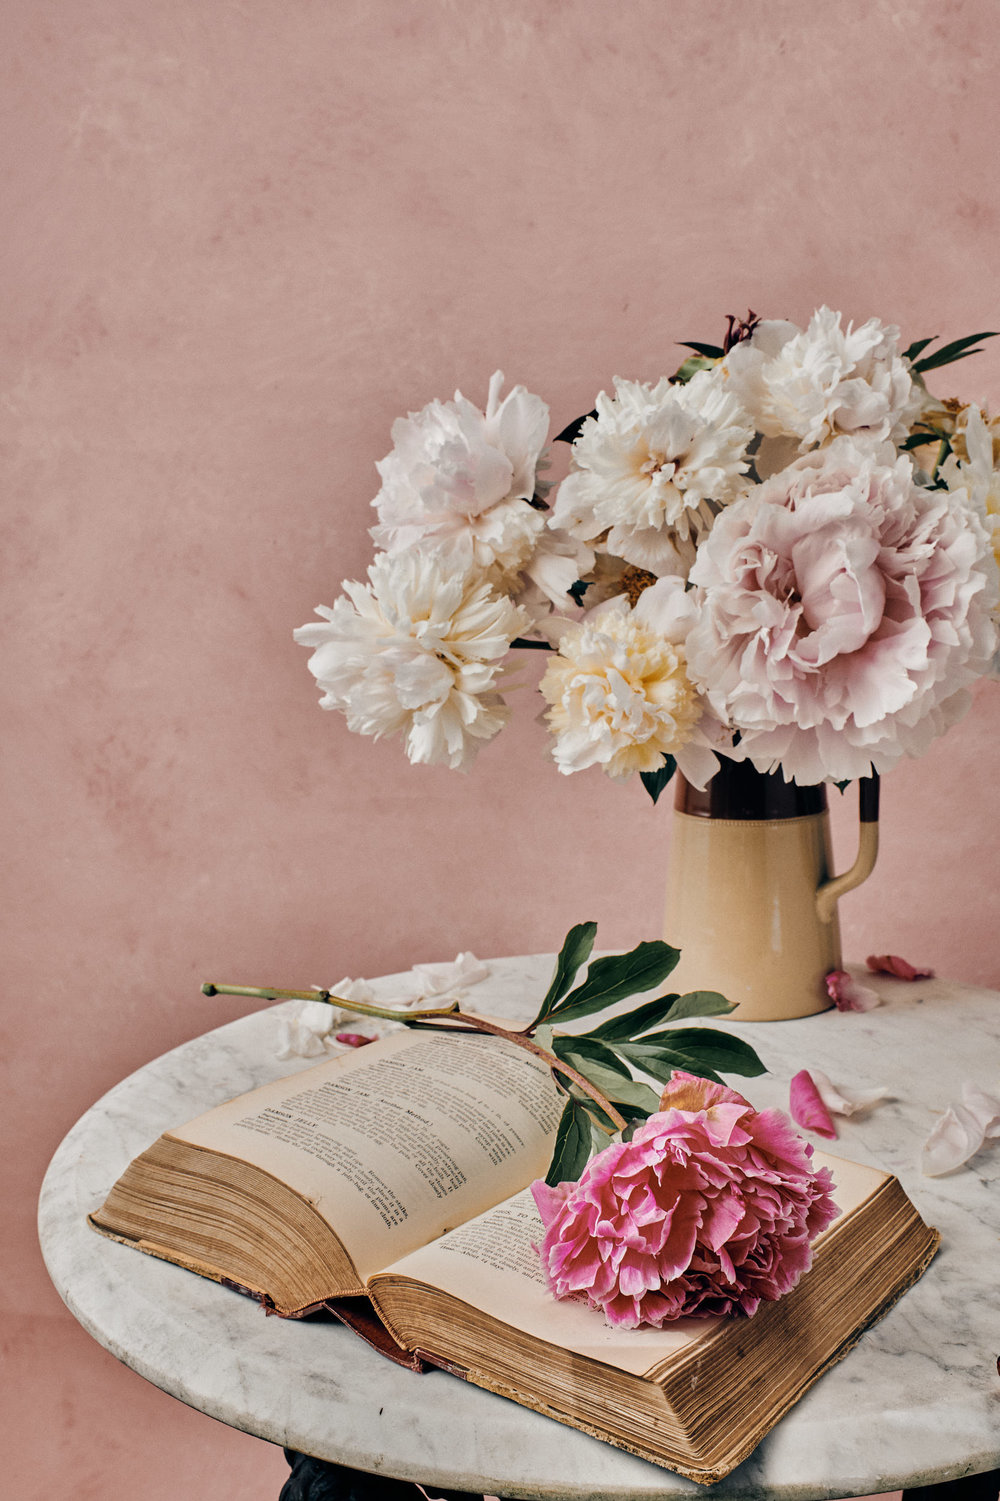 a still life fine art photography of pink peonies in a vase with Mrs beetons books, in the style of a dutch masters painting by yorkshire based photographer matthew lloyd